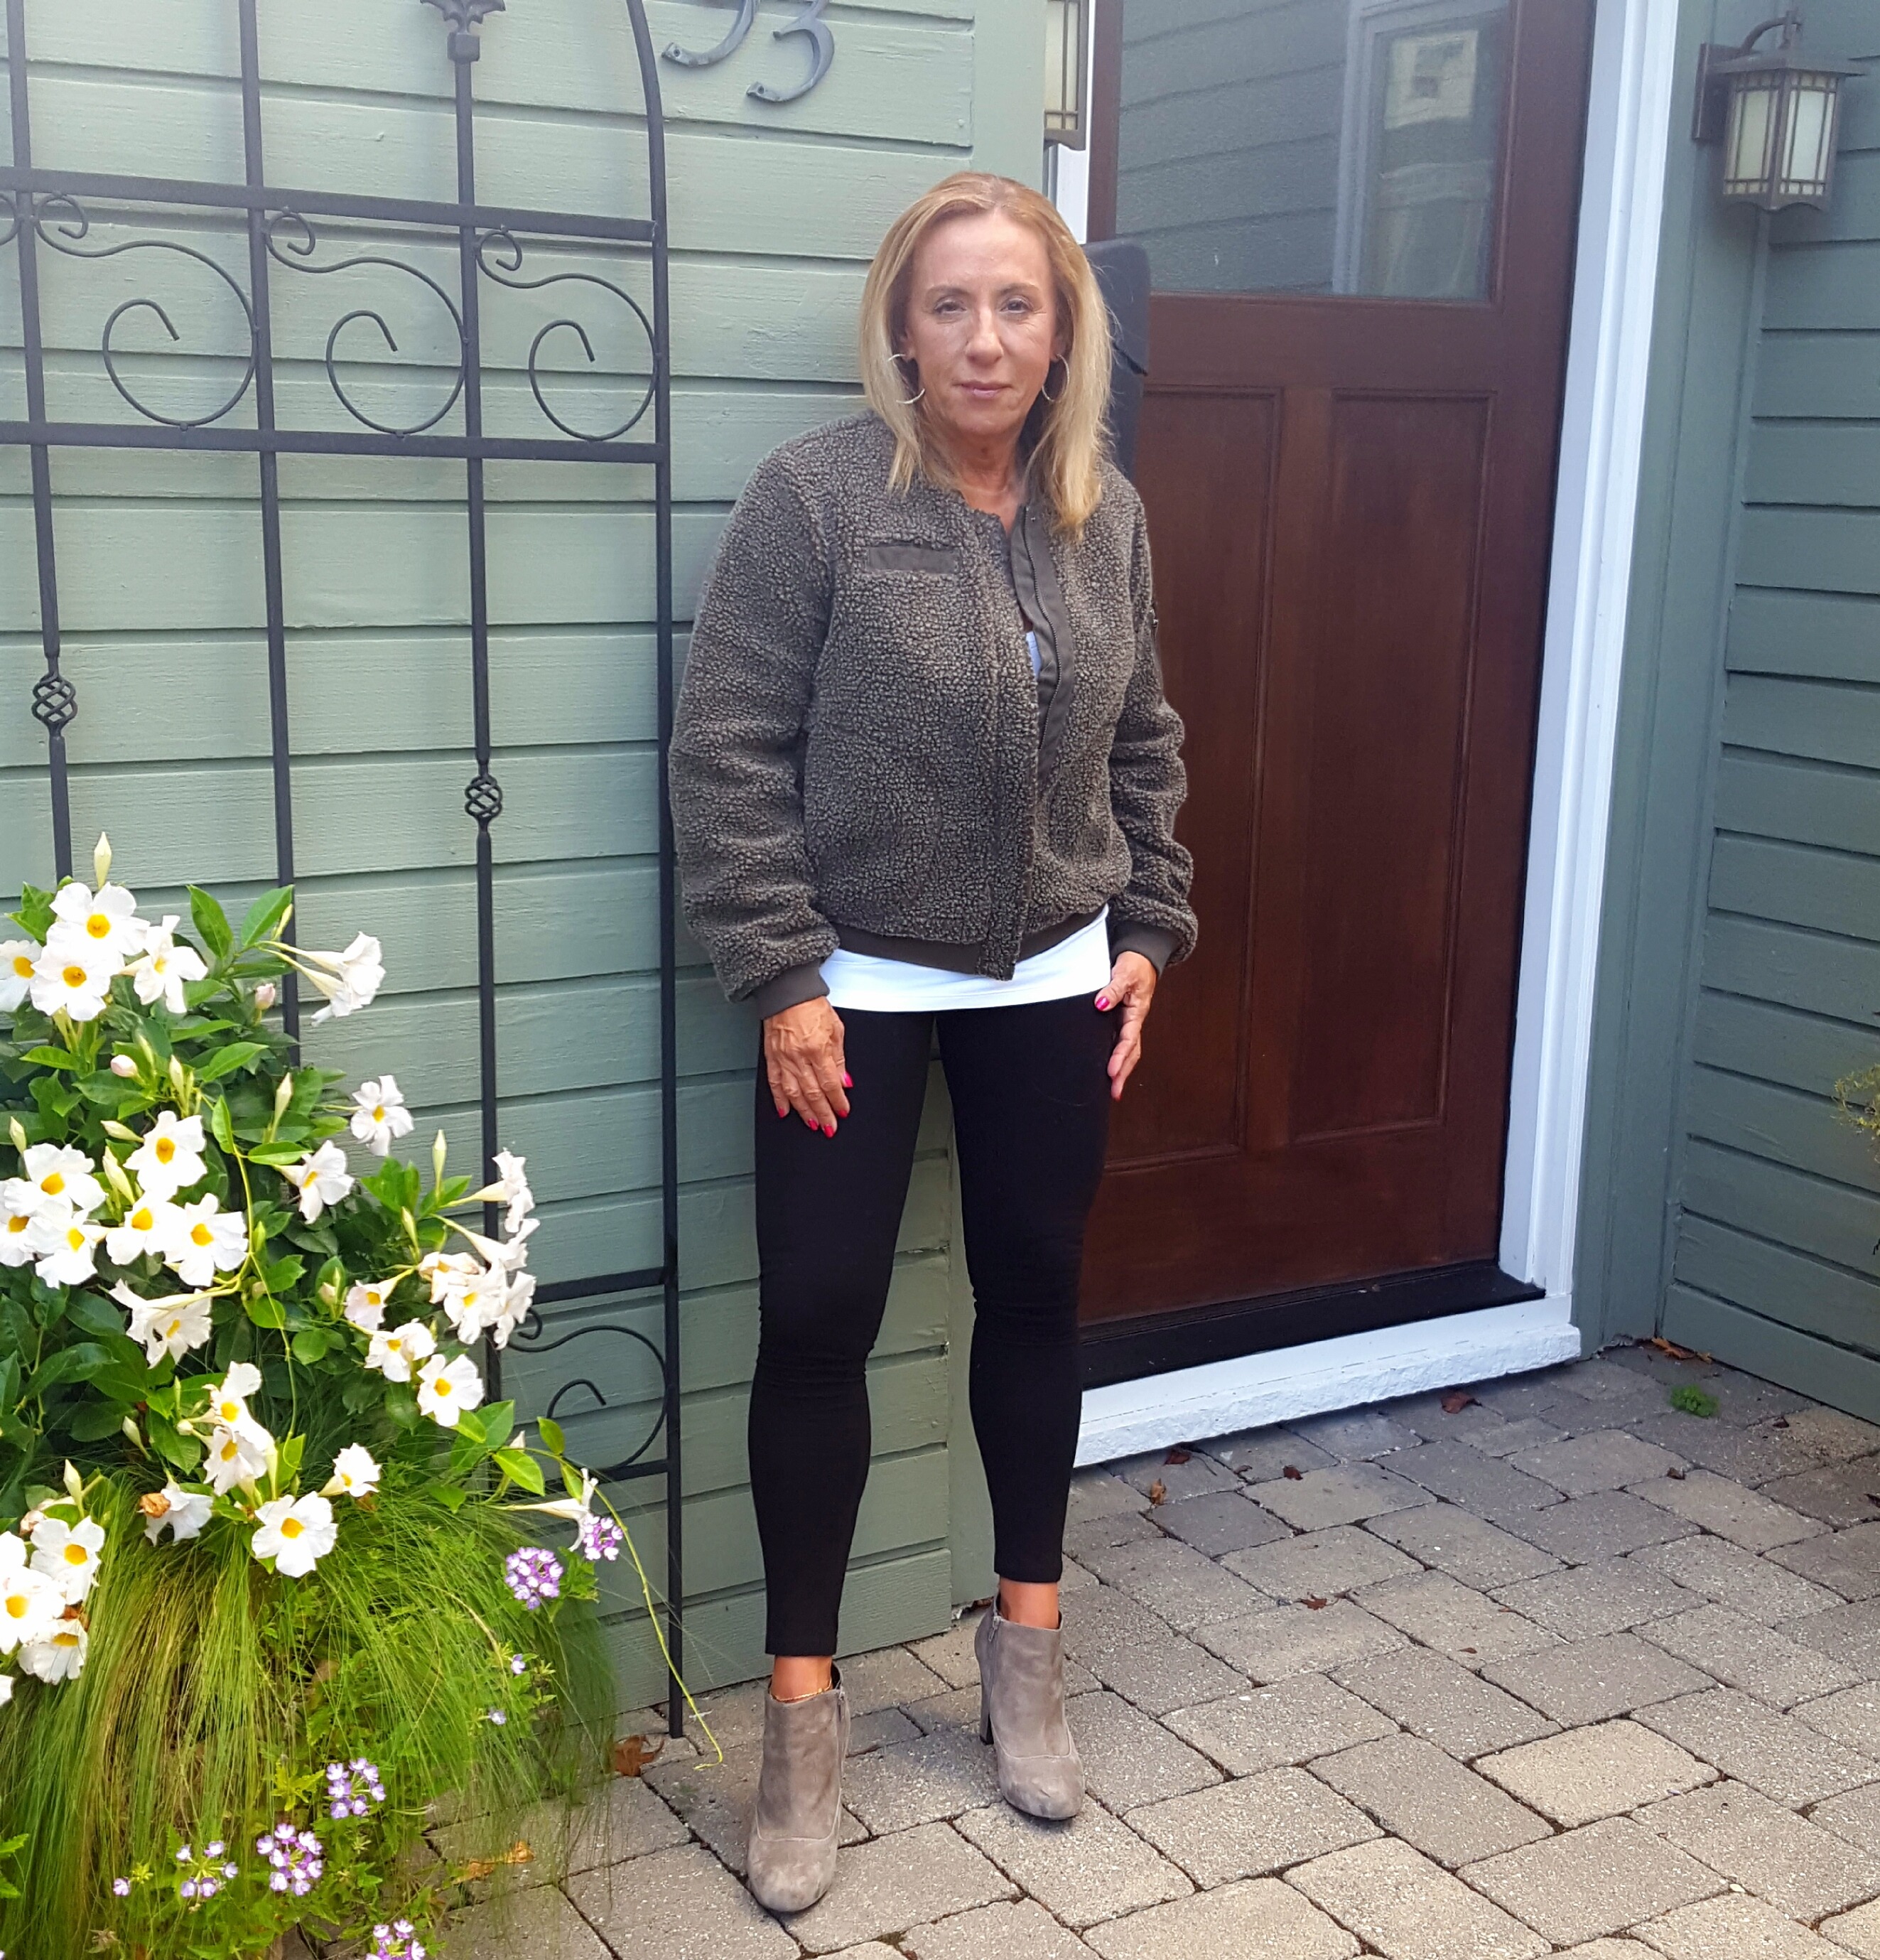 follow-phyllis-this-is-how-women-over-50-can-wear-leggings-grey-jacket